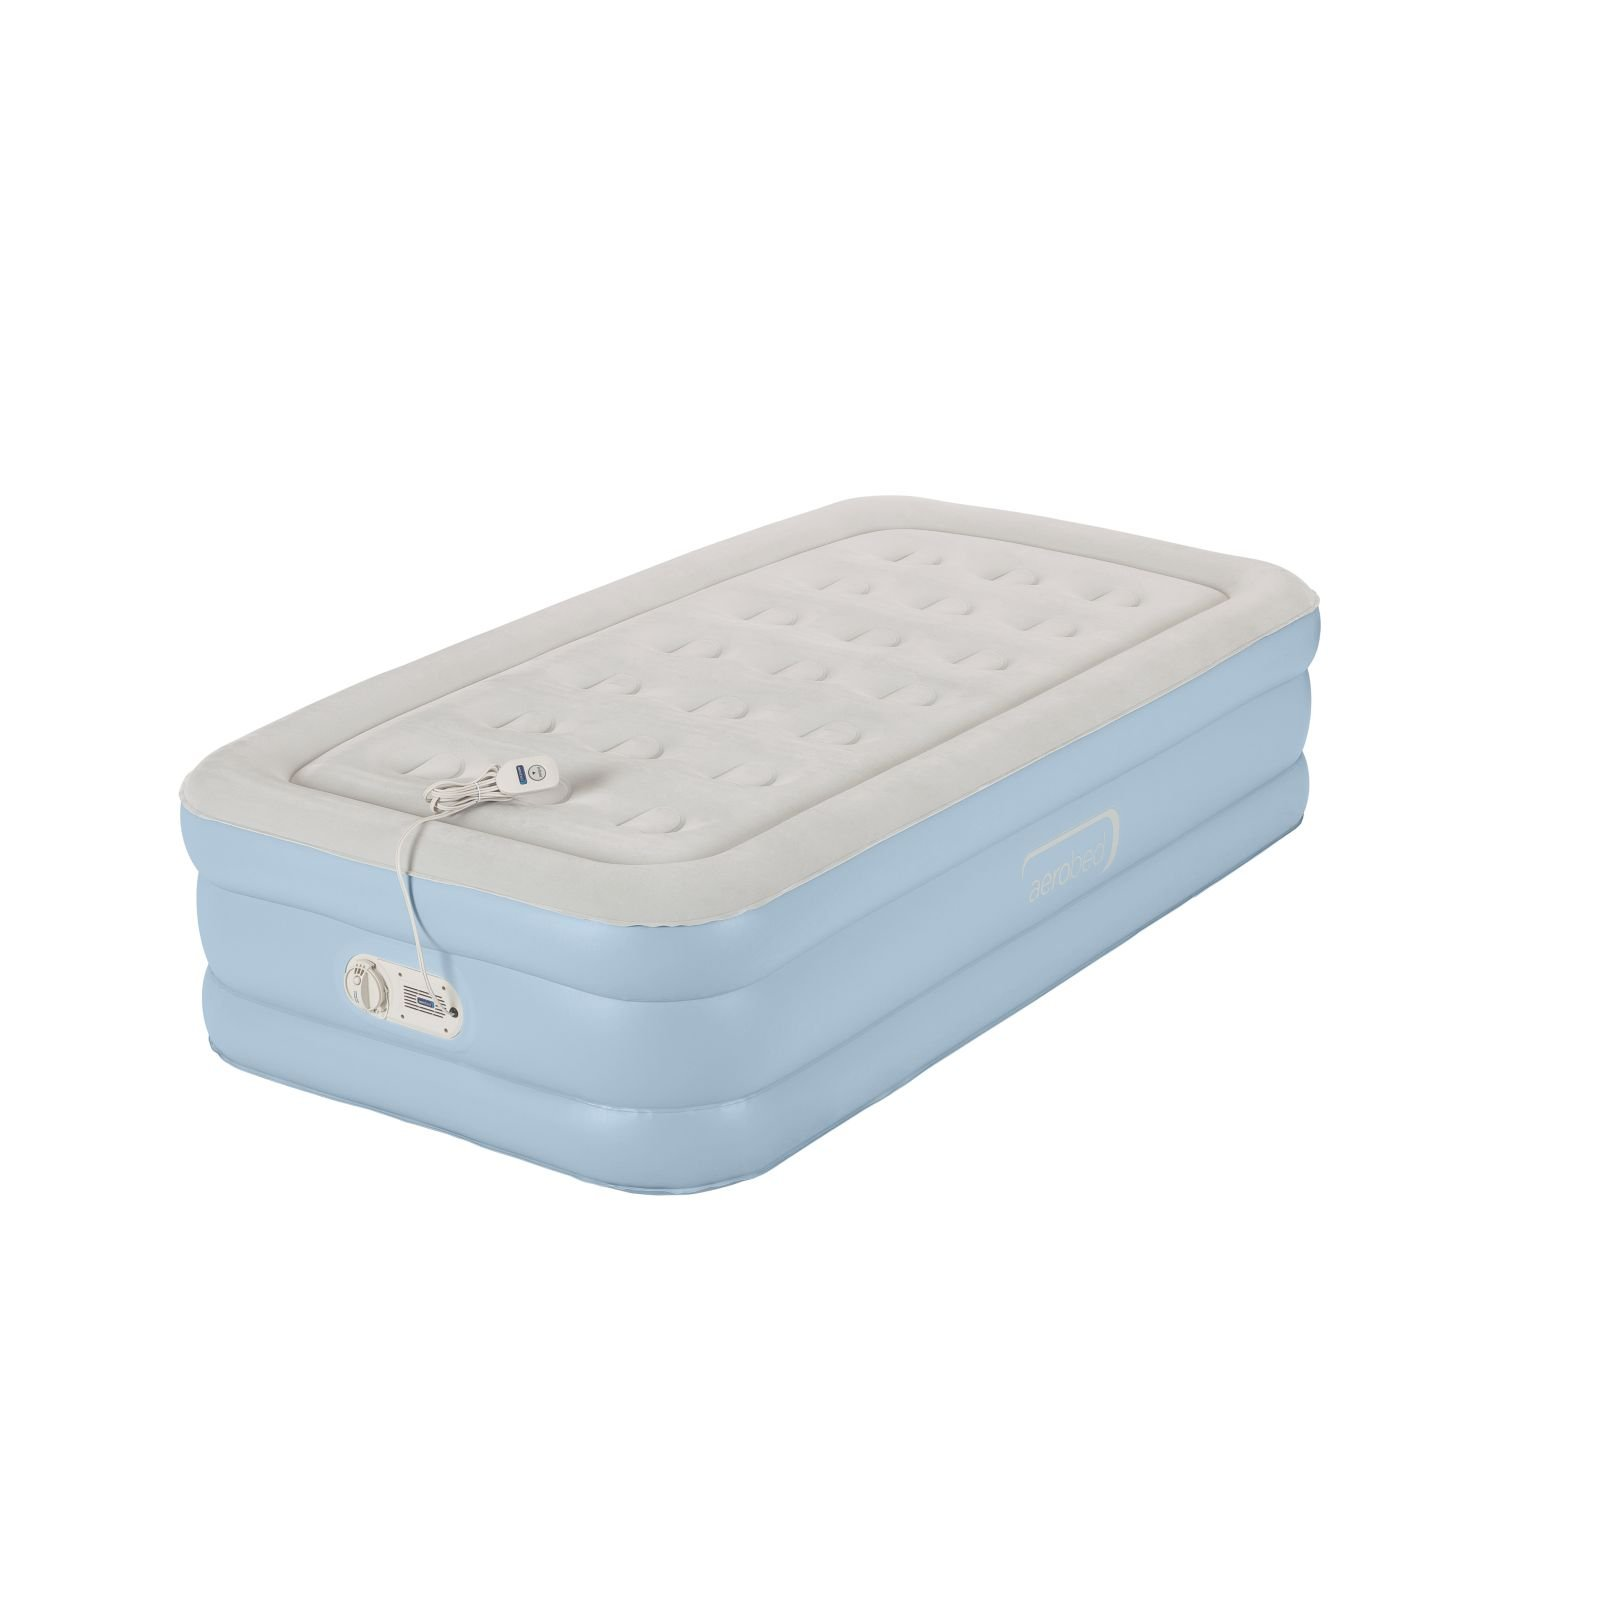 AeroBed One-Touch Comfort Air Mattress, Twin by AeroBed (Image #1)